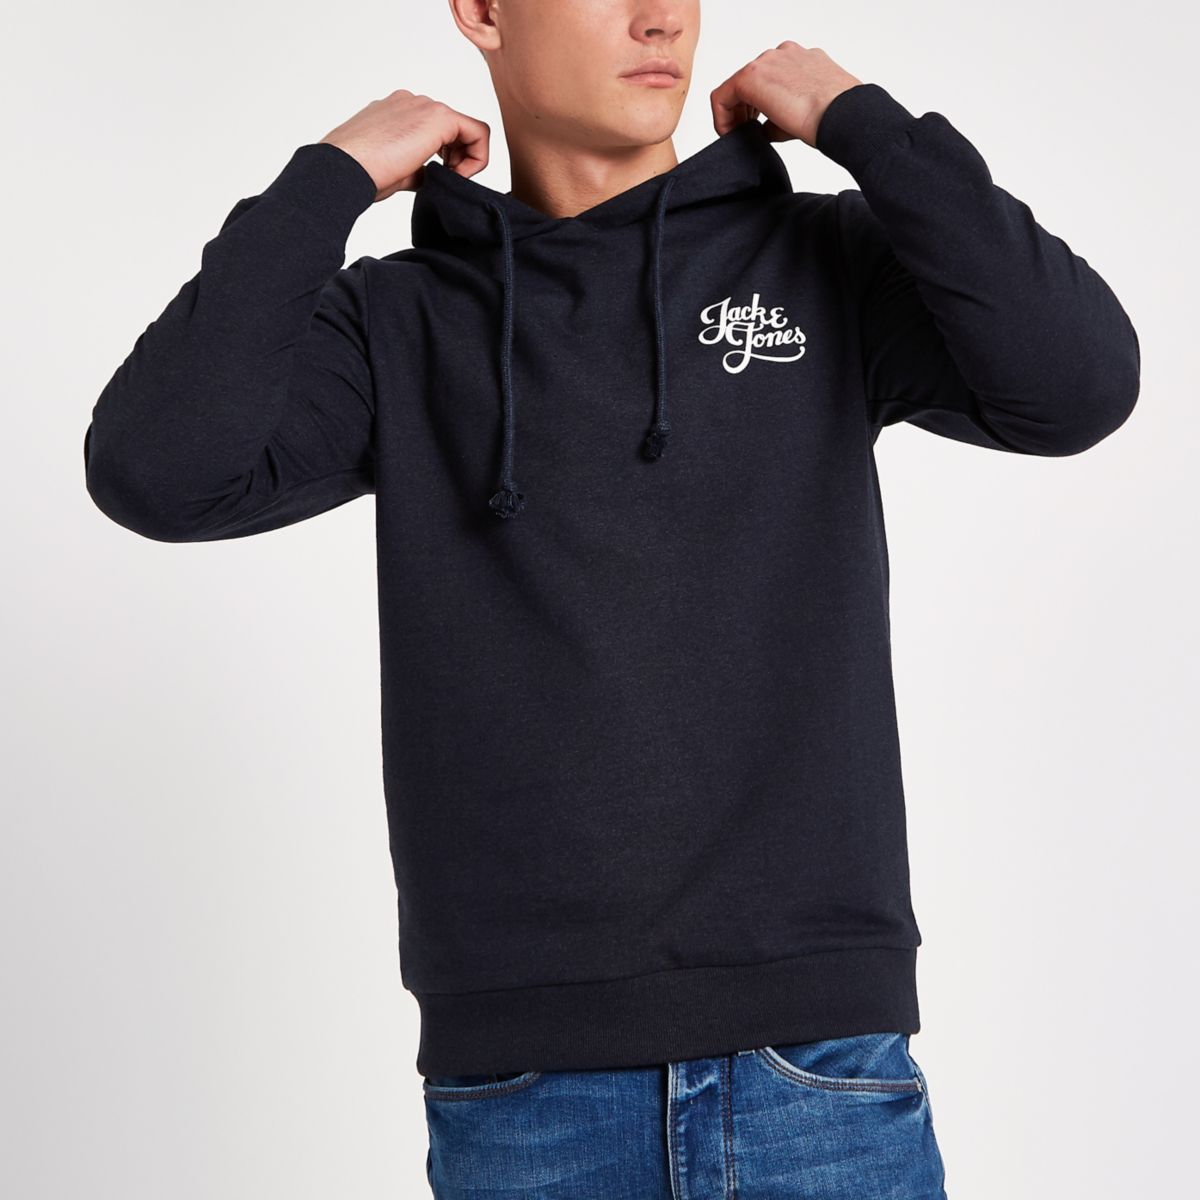 Jack & Jones Originals navy hoodie